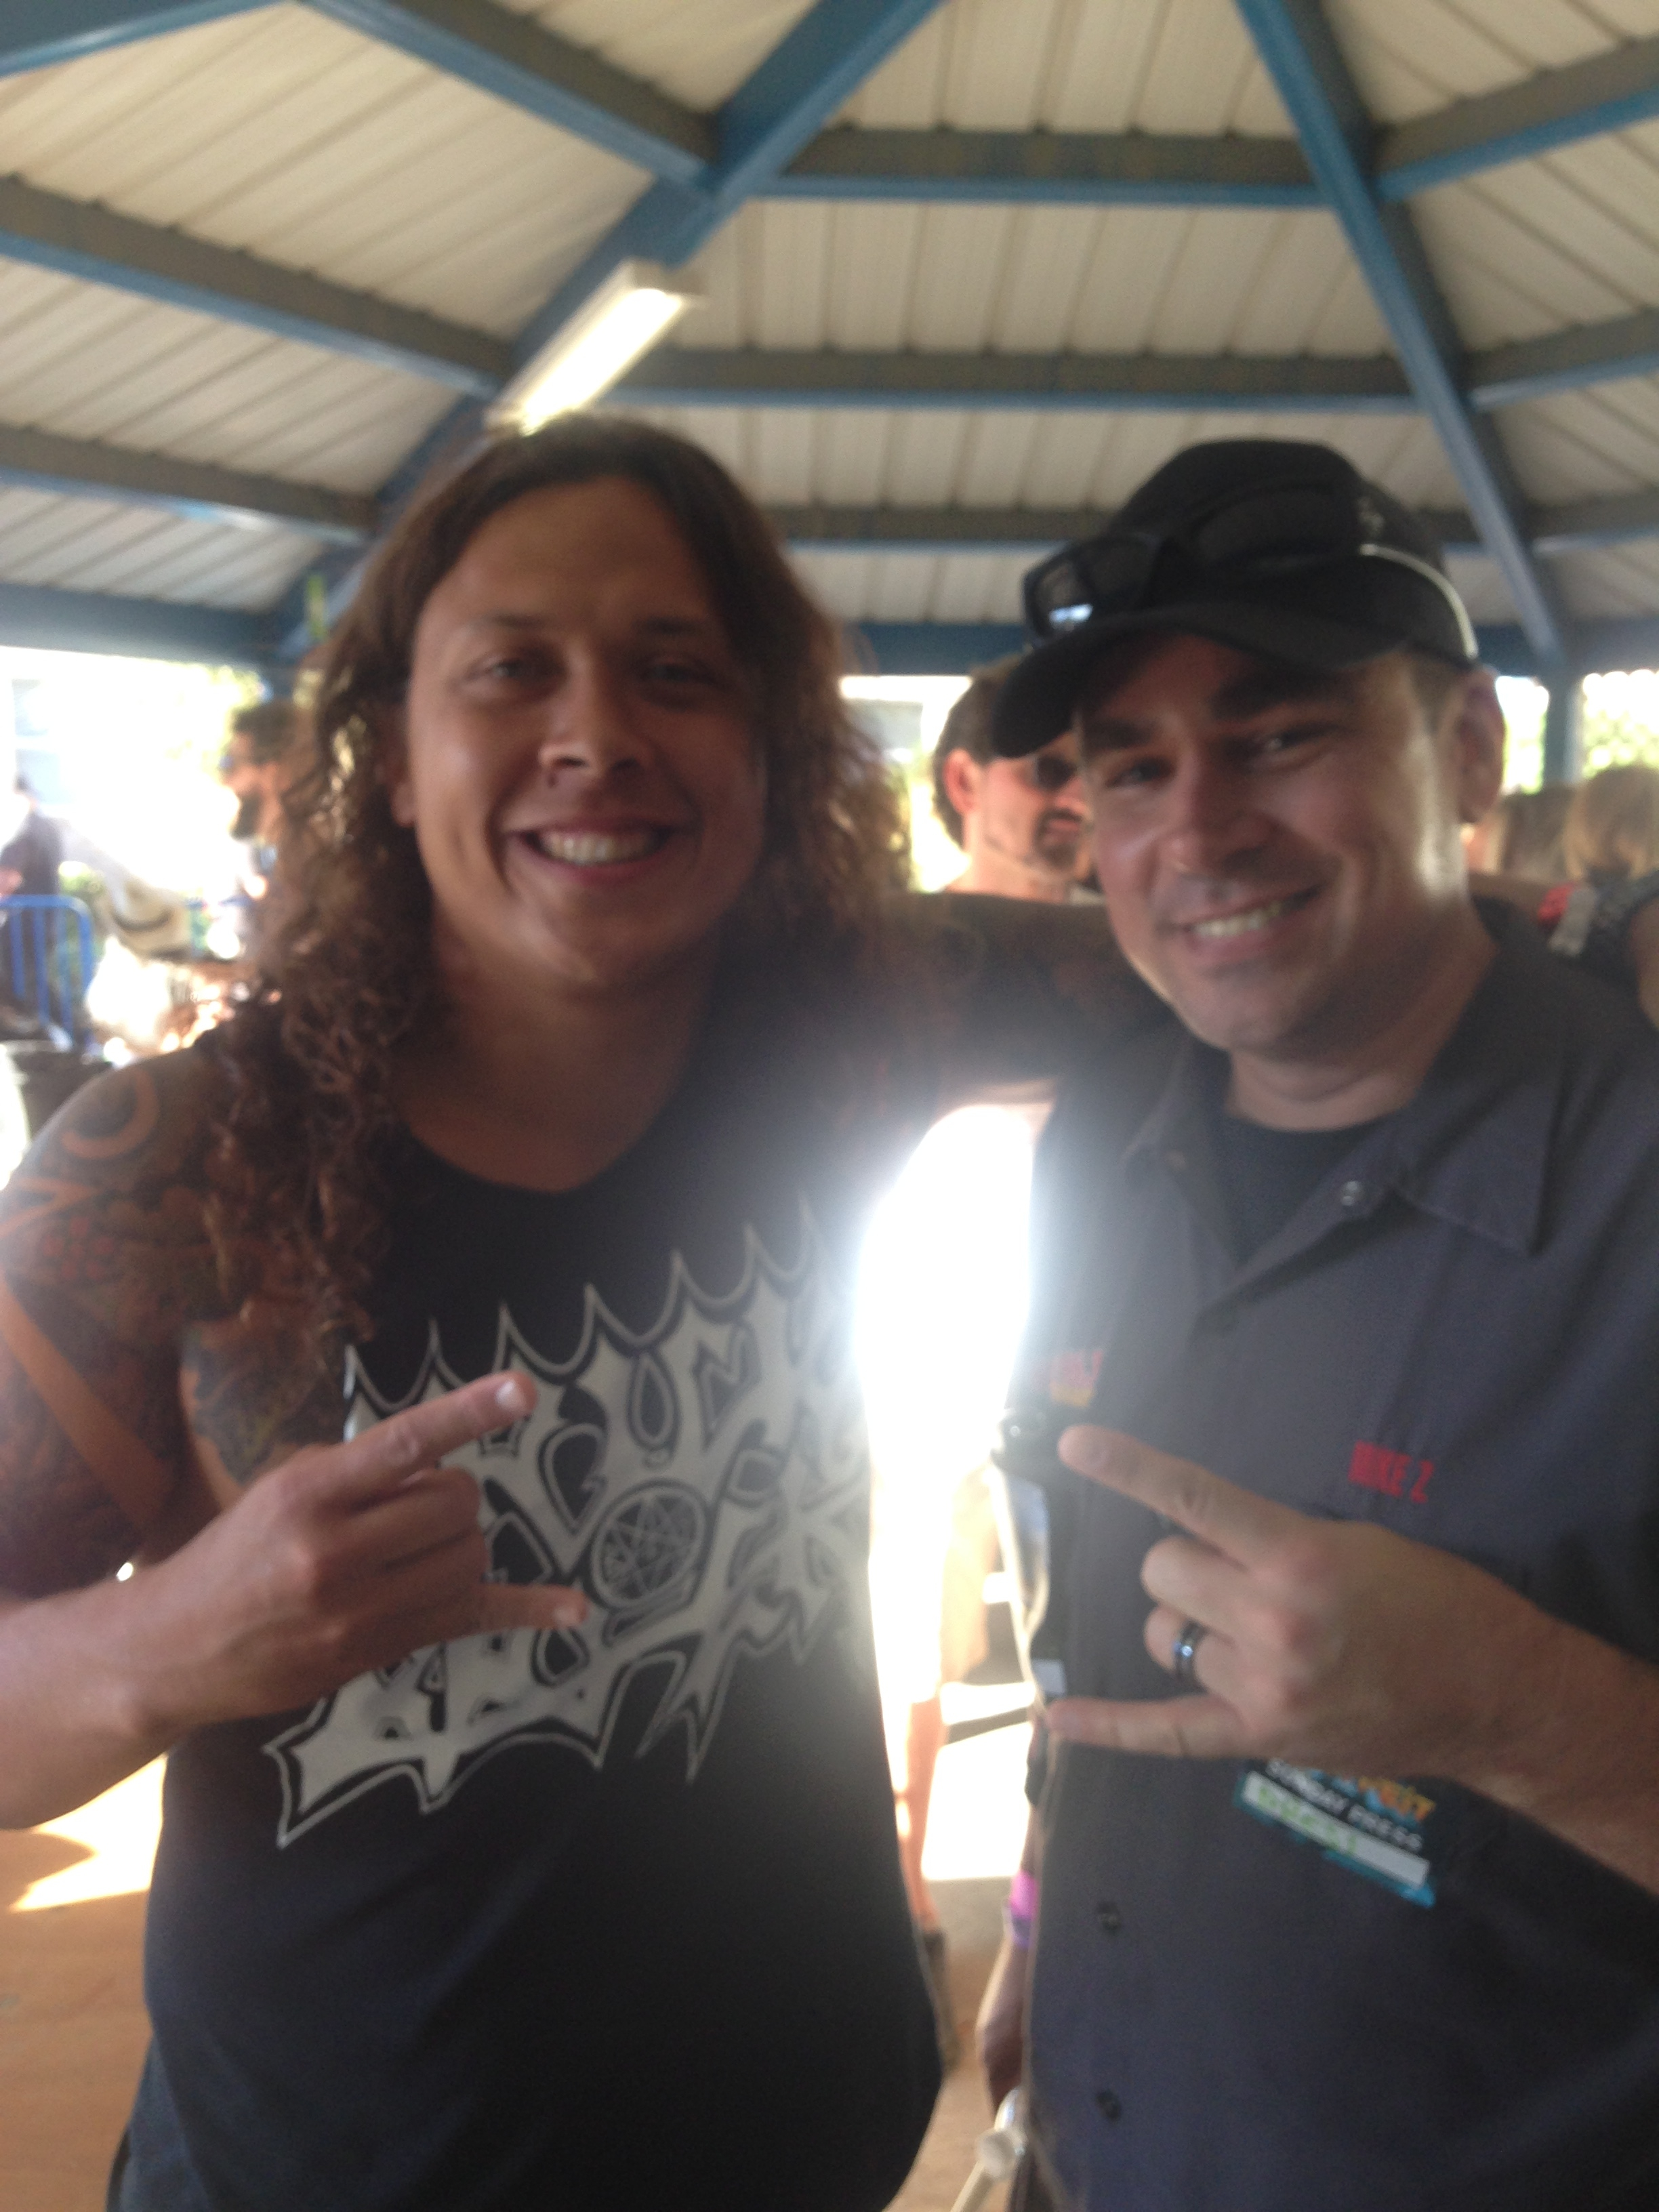 """(LISTEN) Nick Hipa of Wovenwar talks to Mike Z at """"Ozzfest Meets Knotfest"""""""